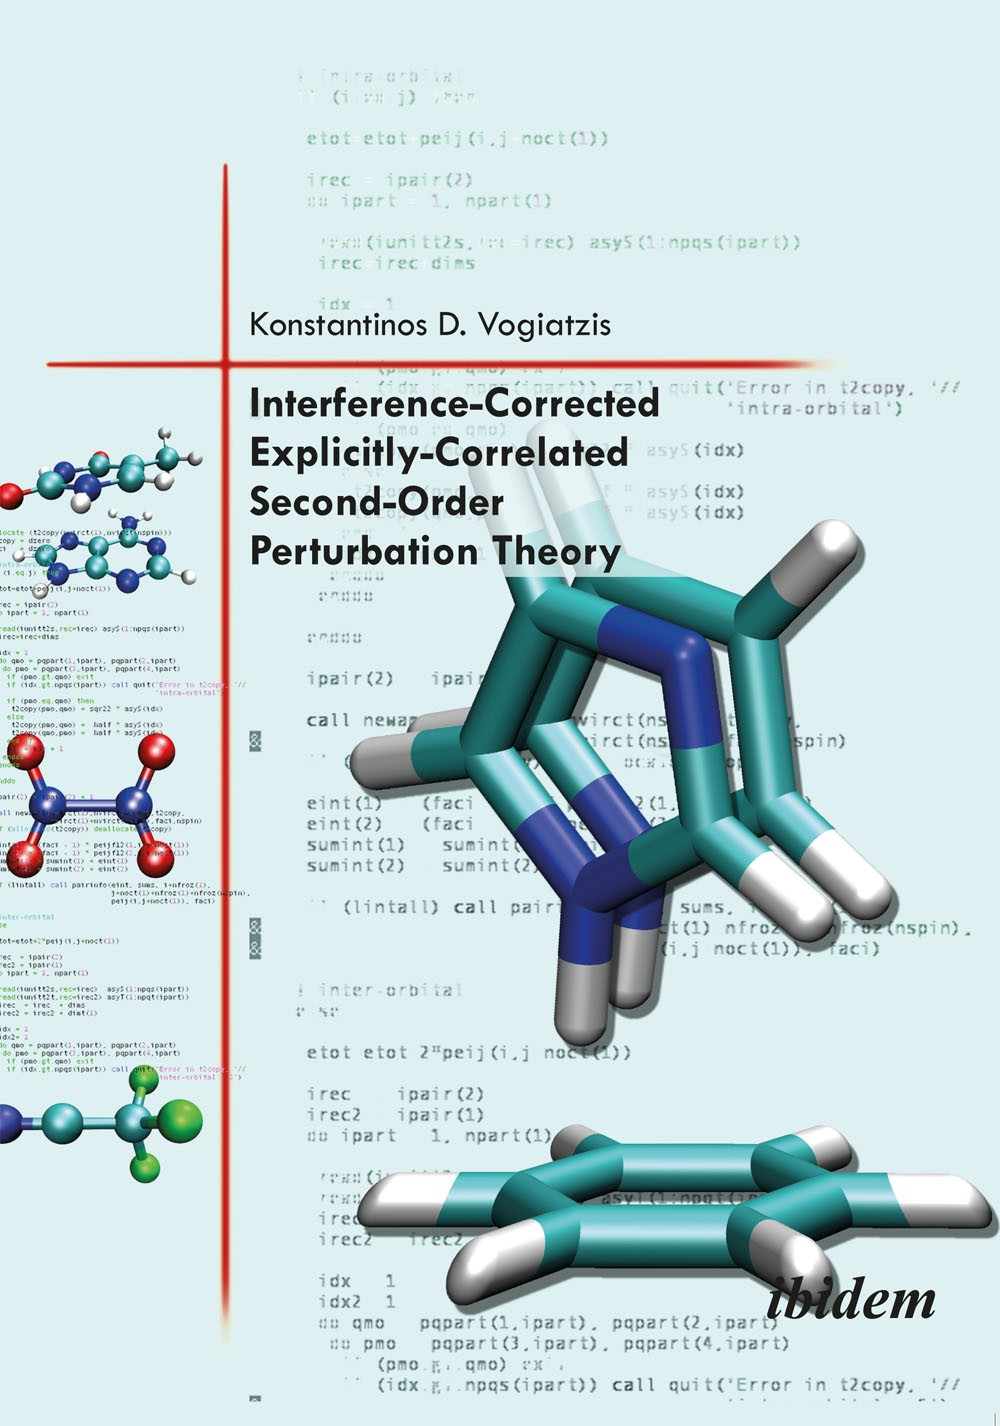 Interference-Corrected Explicitly-Correlated Second-Order Perturbation Theory